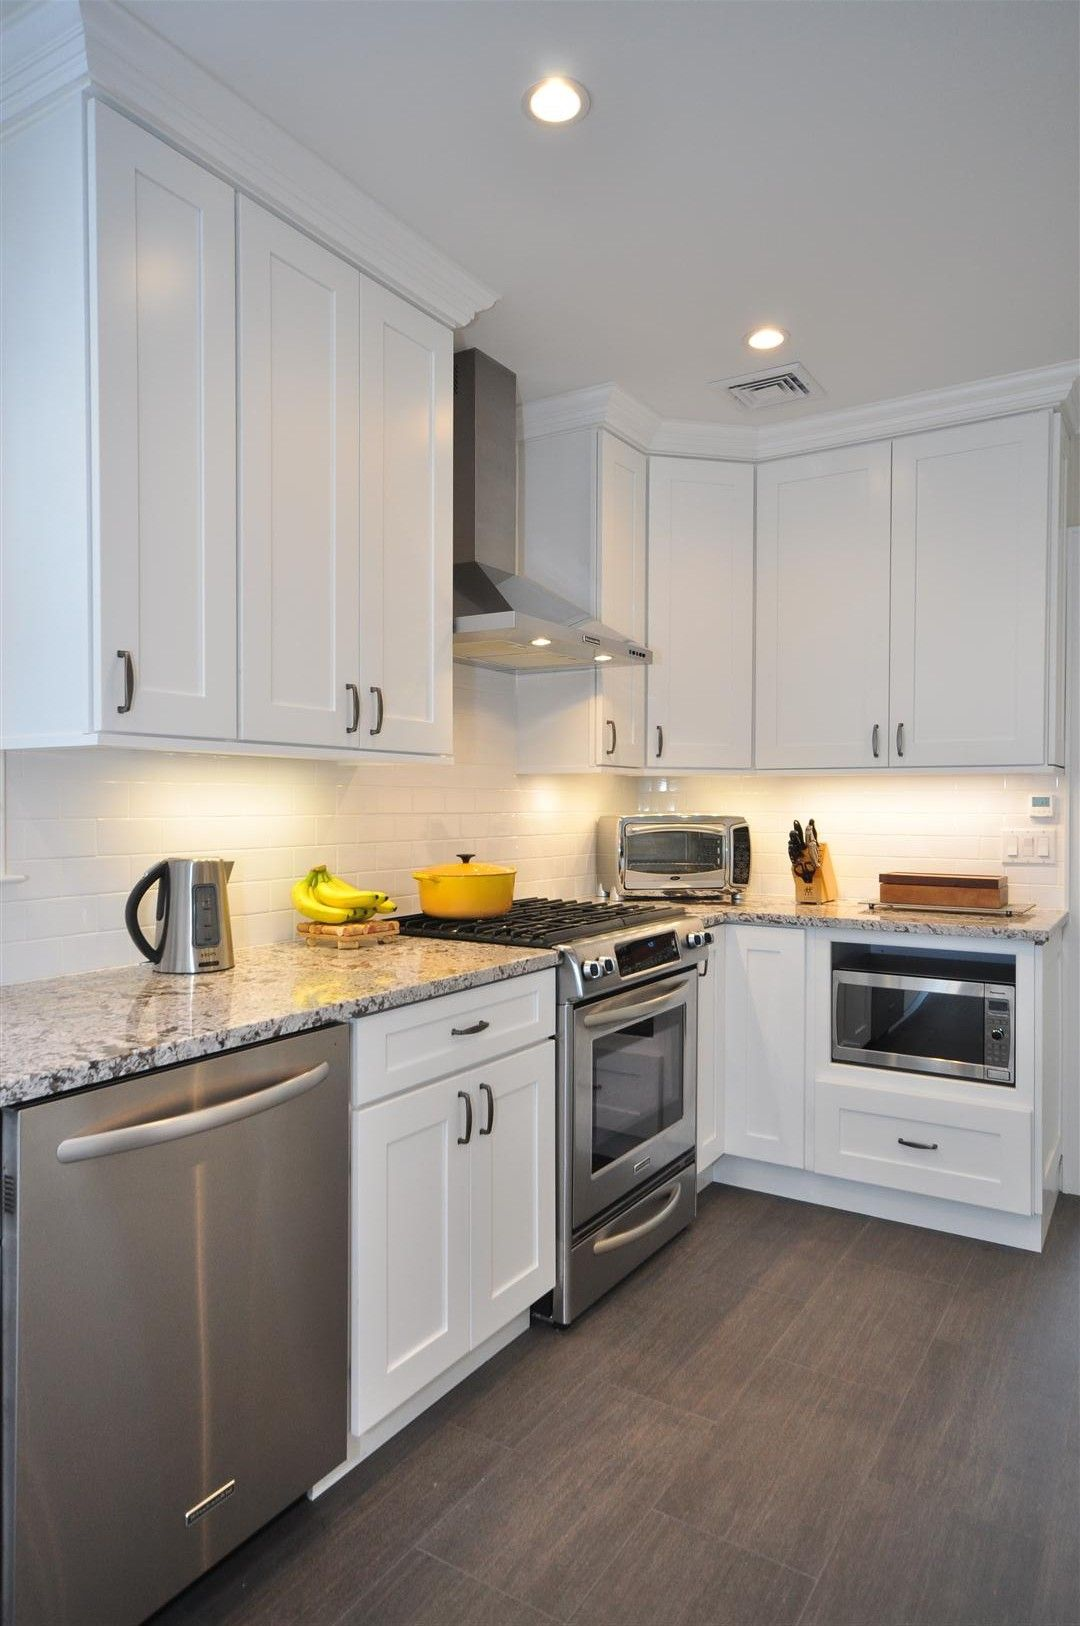 white shaker kitchen cabinets white shaker kitchen cabinets Gray Floor Gray Counter tops